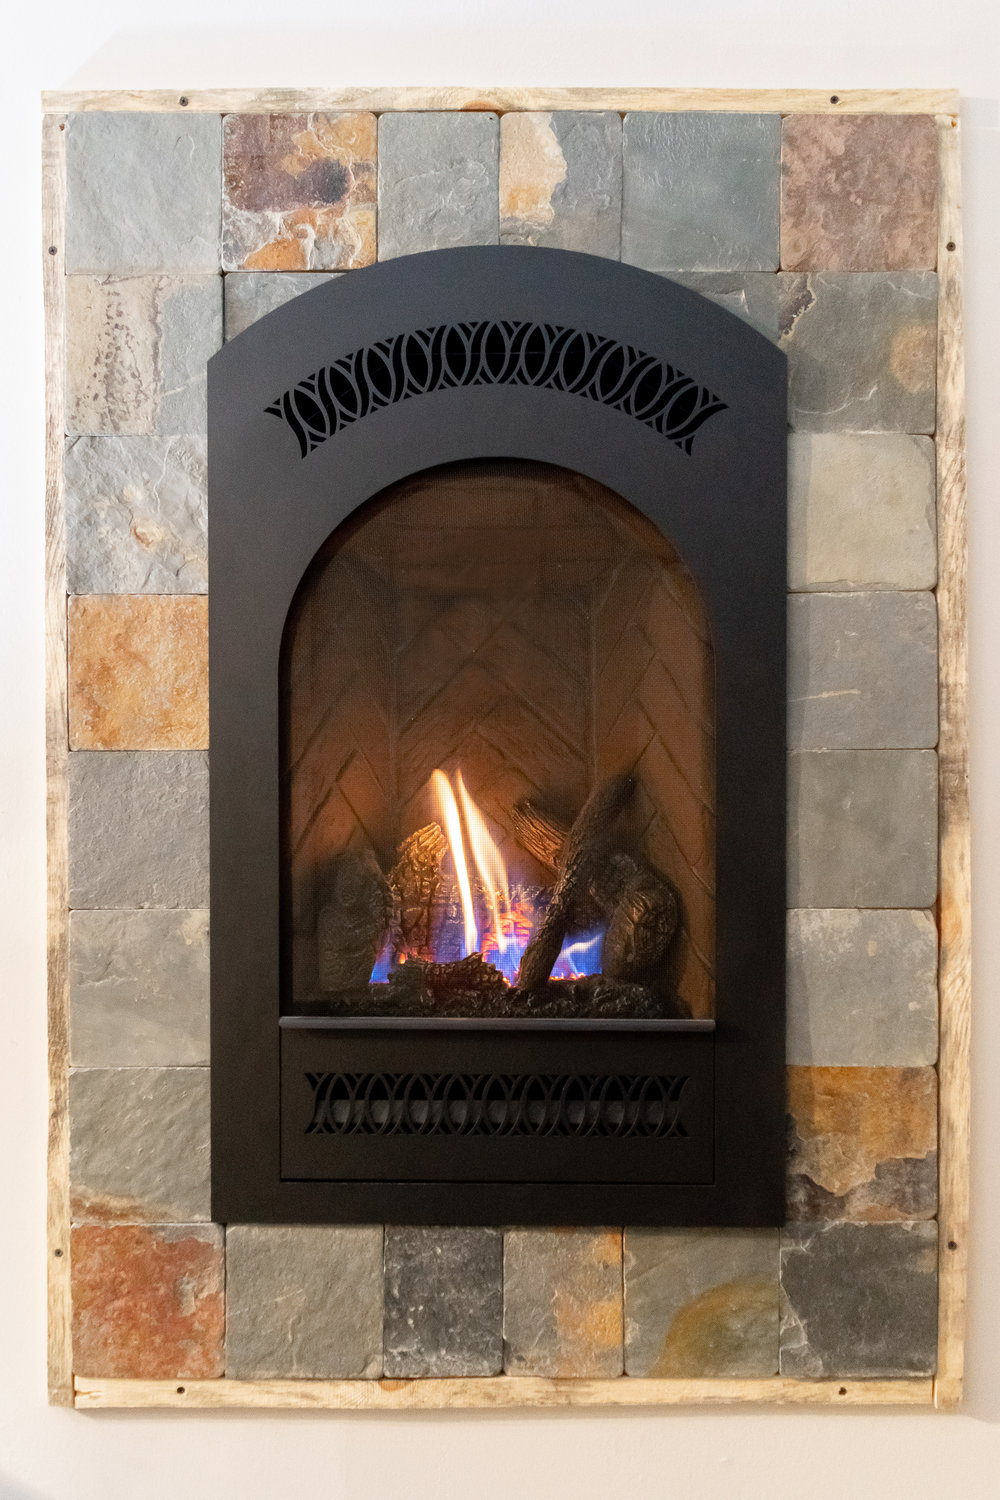 FireplaceX Bed & Breakfast - ‧ Direct Vent Gas Fireplace - 16,500 BTU‧ Rumford Firebox Panels‧ Black Painted Classic Arch Face‧ High Definition Log Set‧ Full Function Green Smart Remote Control‧ Fan‧ Vertically oriented‧ Best suited for bedrooms - kitchens - offices